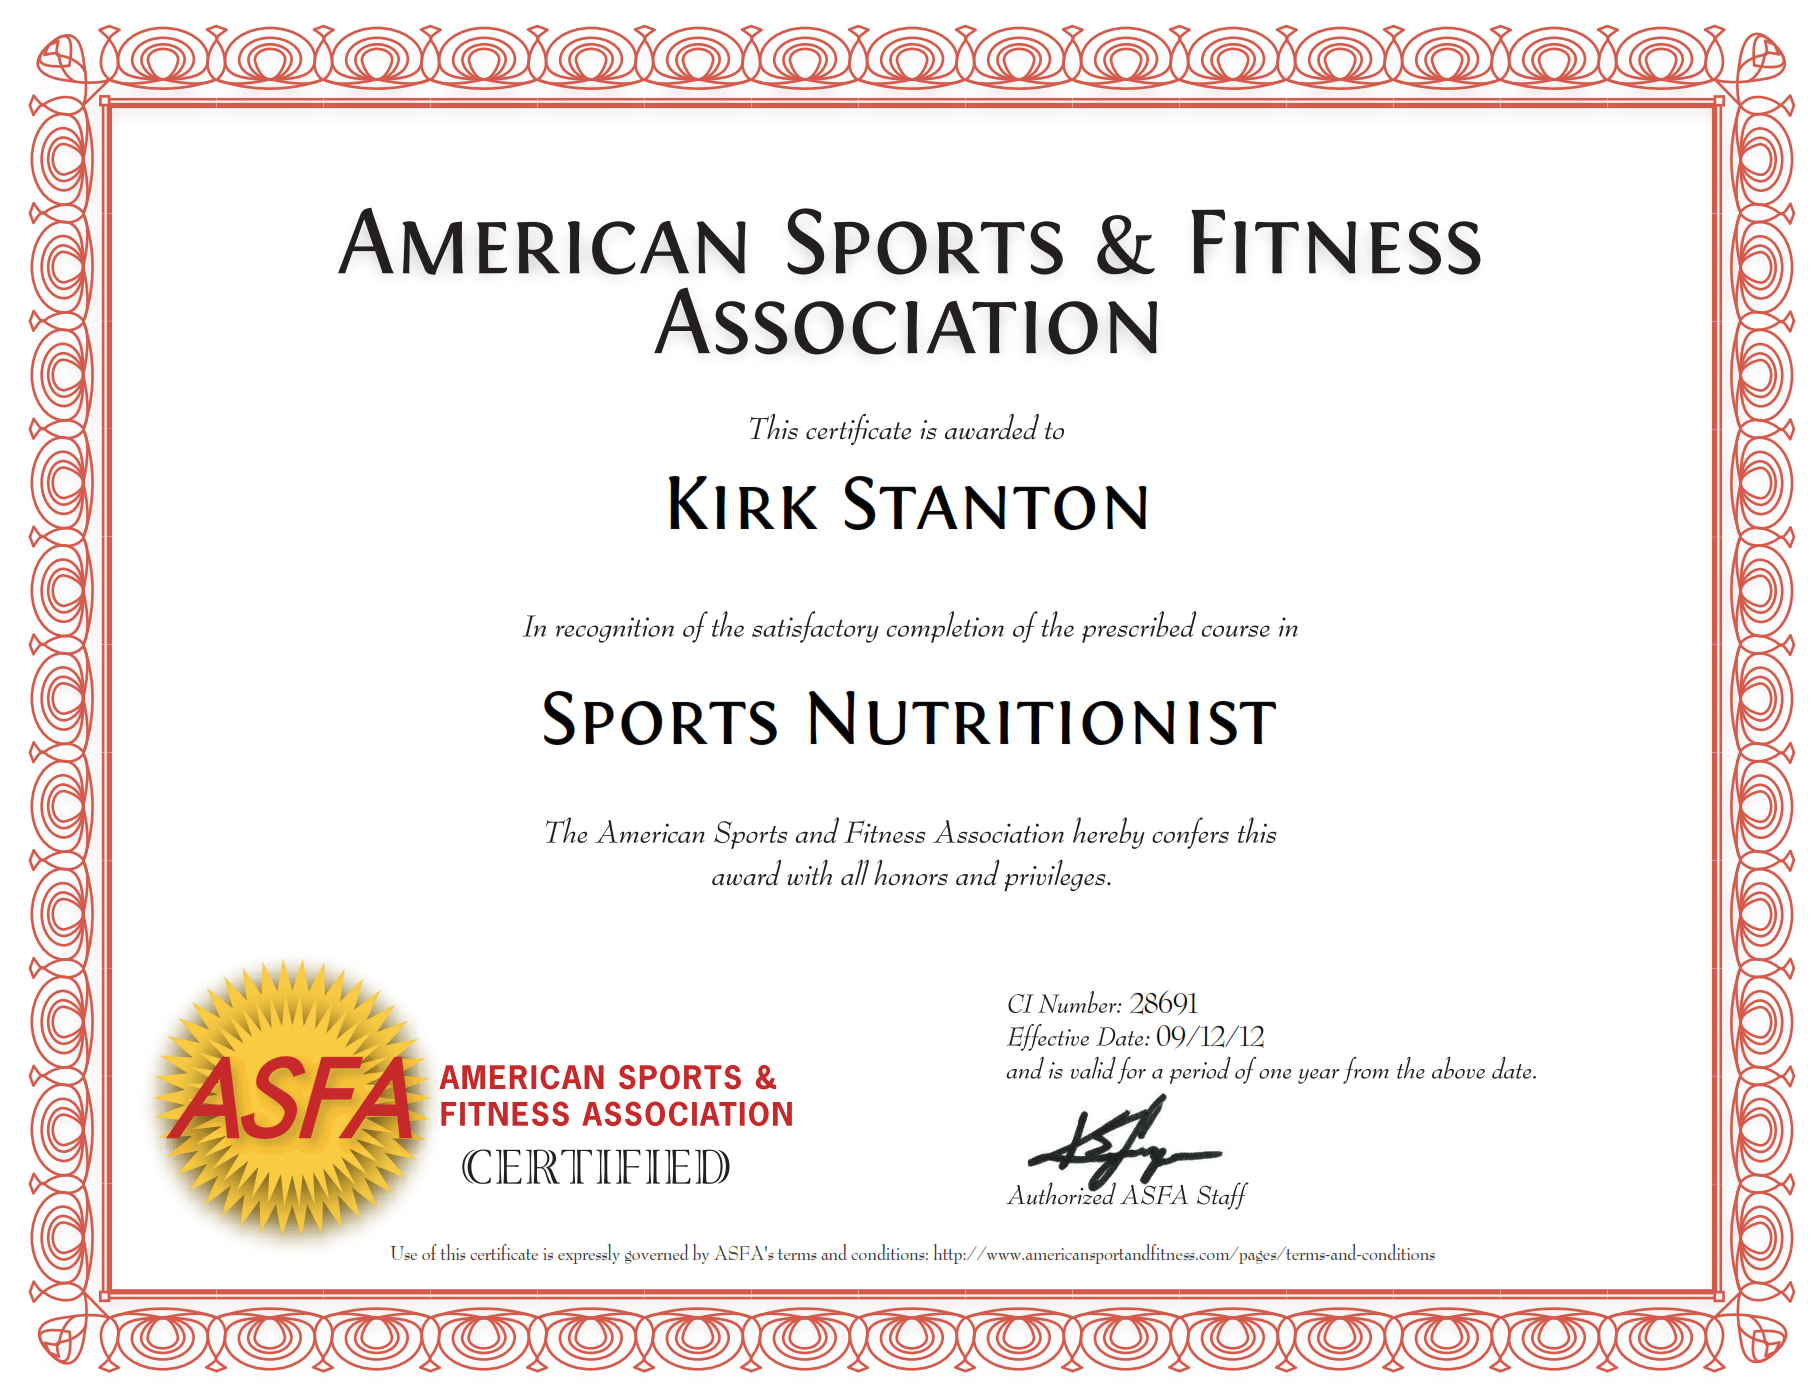 am a Certified Sports Nutritionist. See certificate .